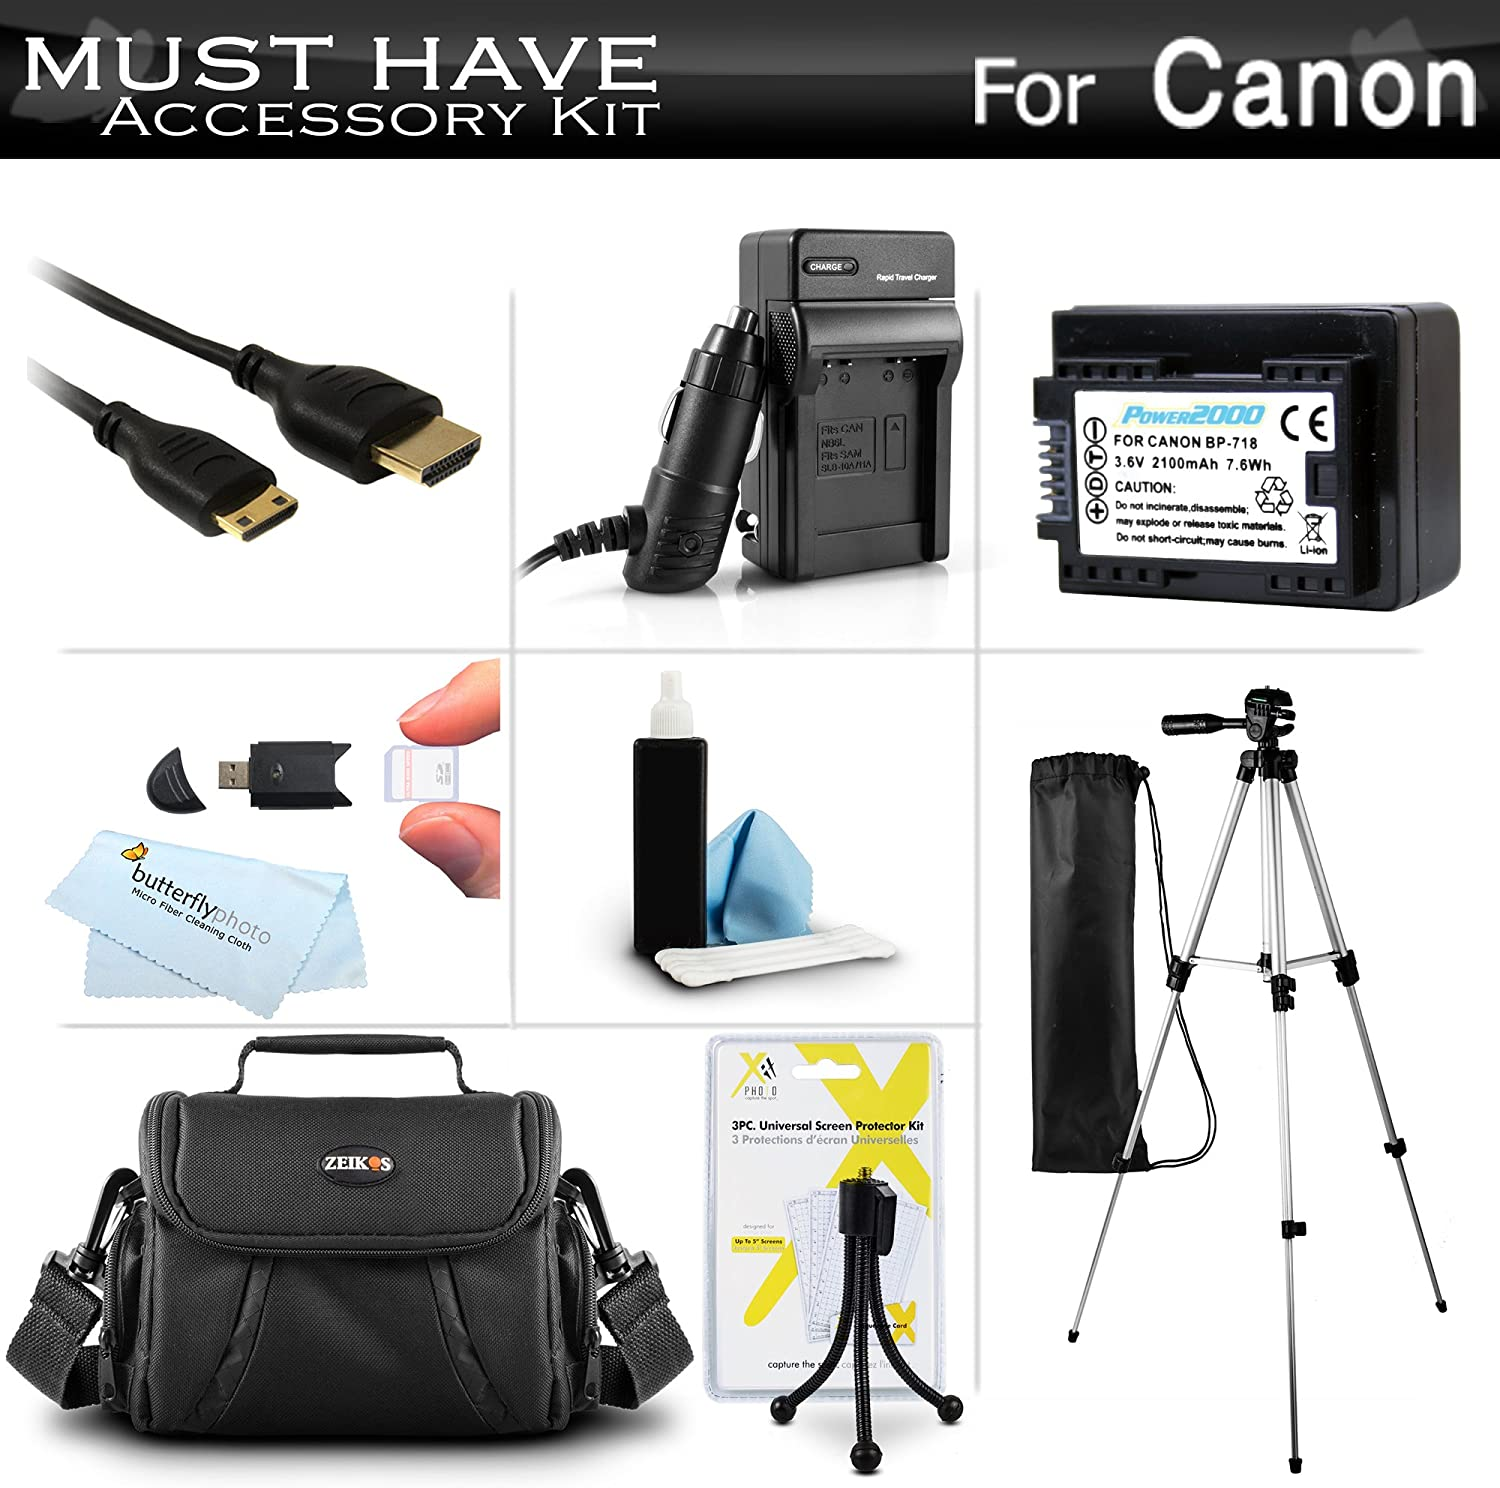 2 Units + AC//DC Travel Charger Microfiber Cleaning Cloth. Canon VIXIA HF R600 High Capacity Intelligent Batteries